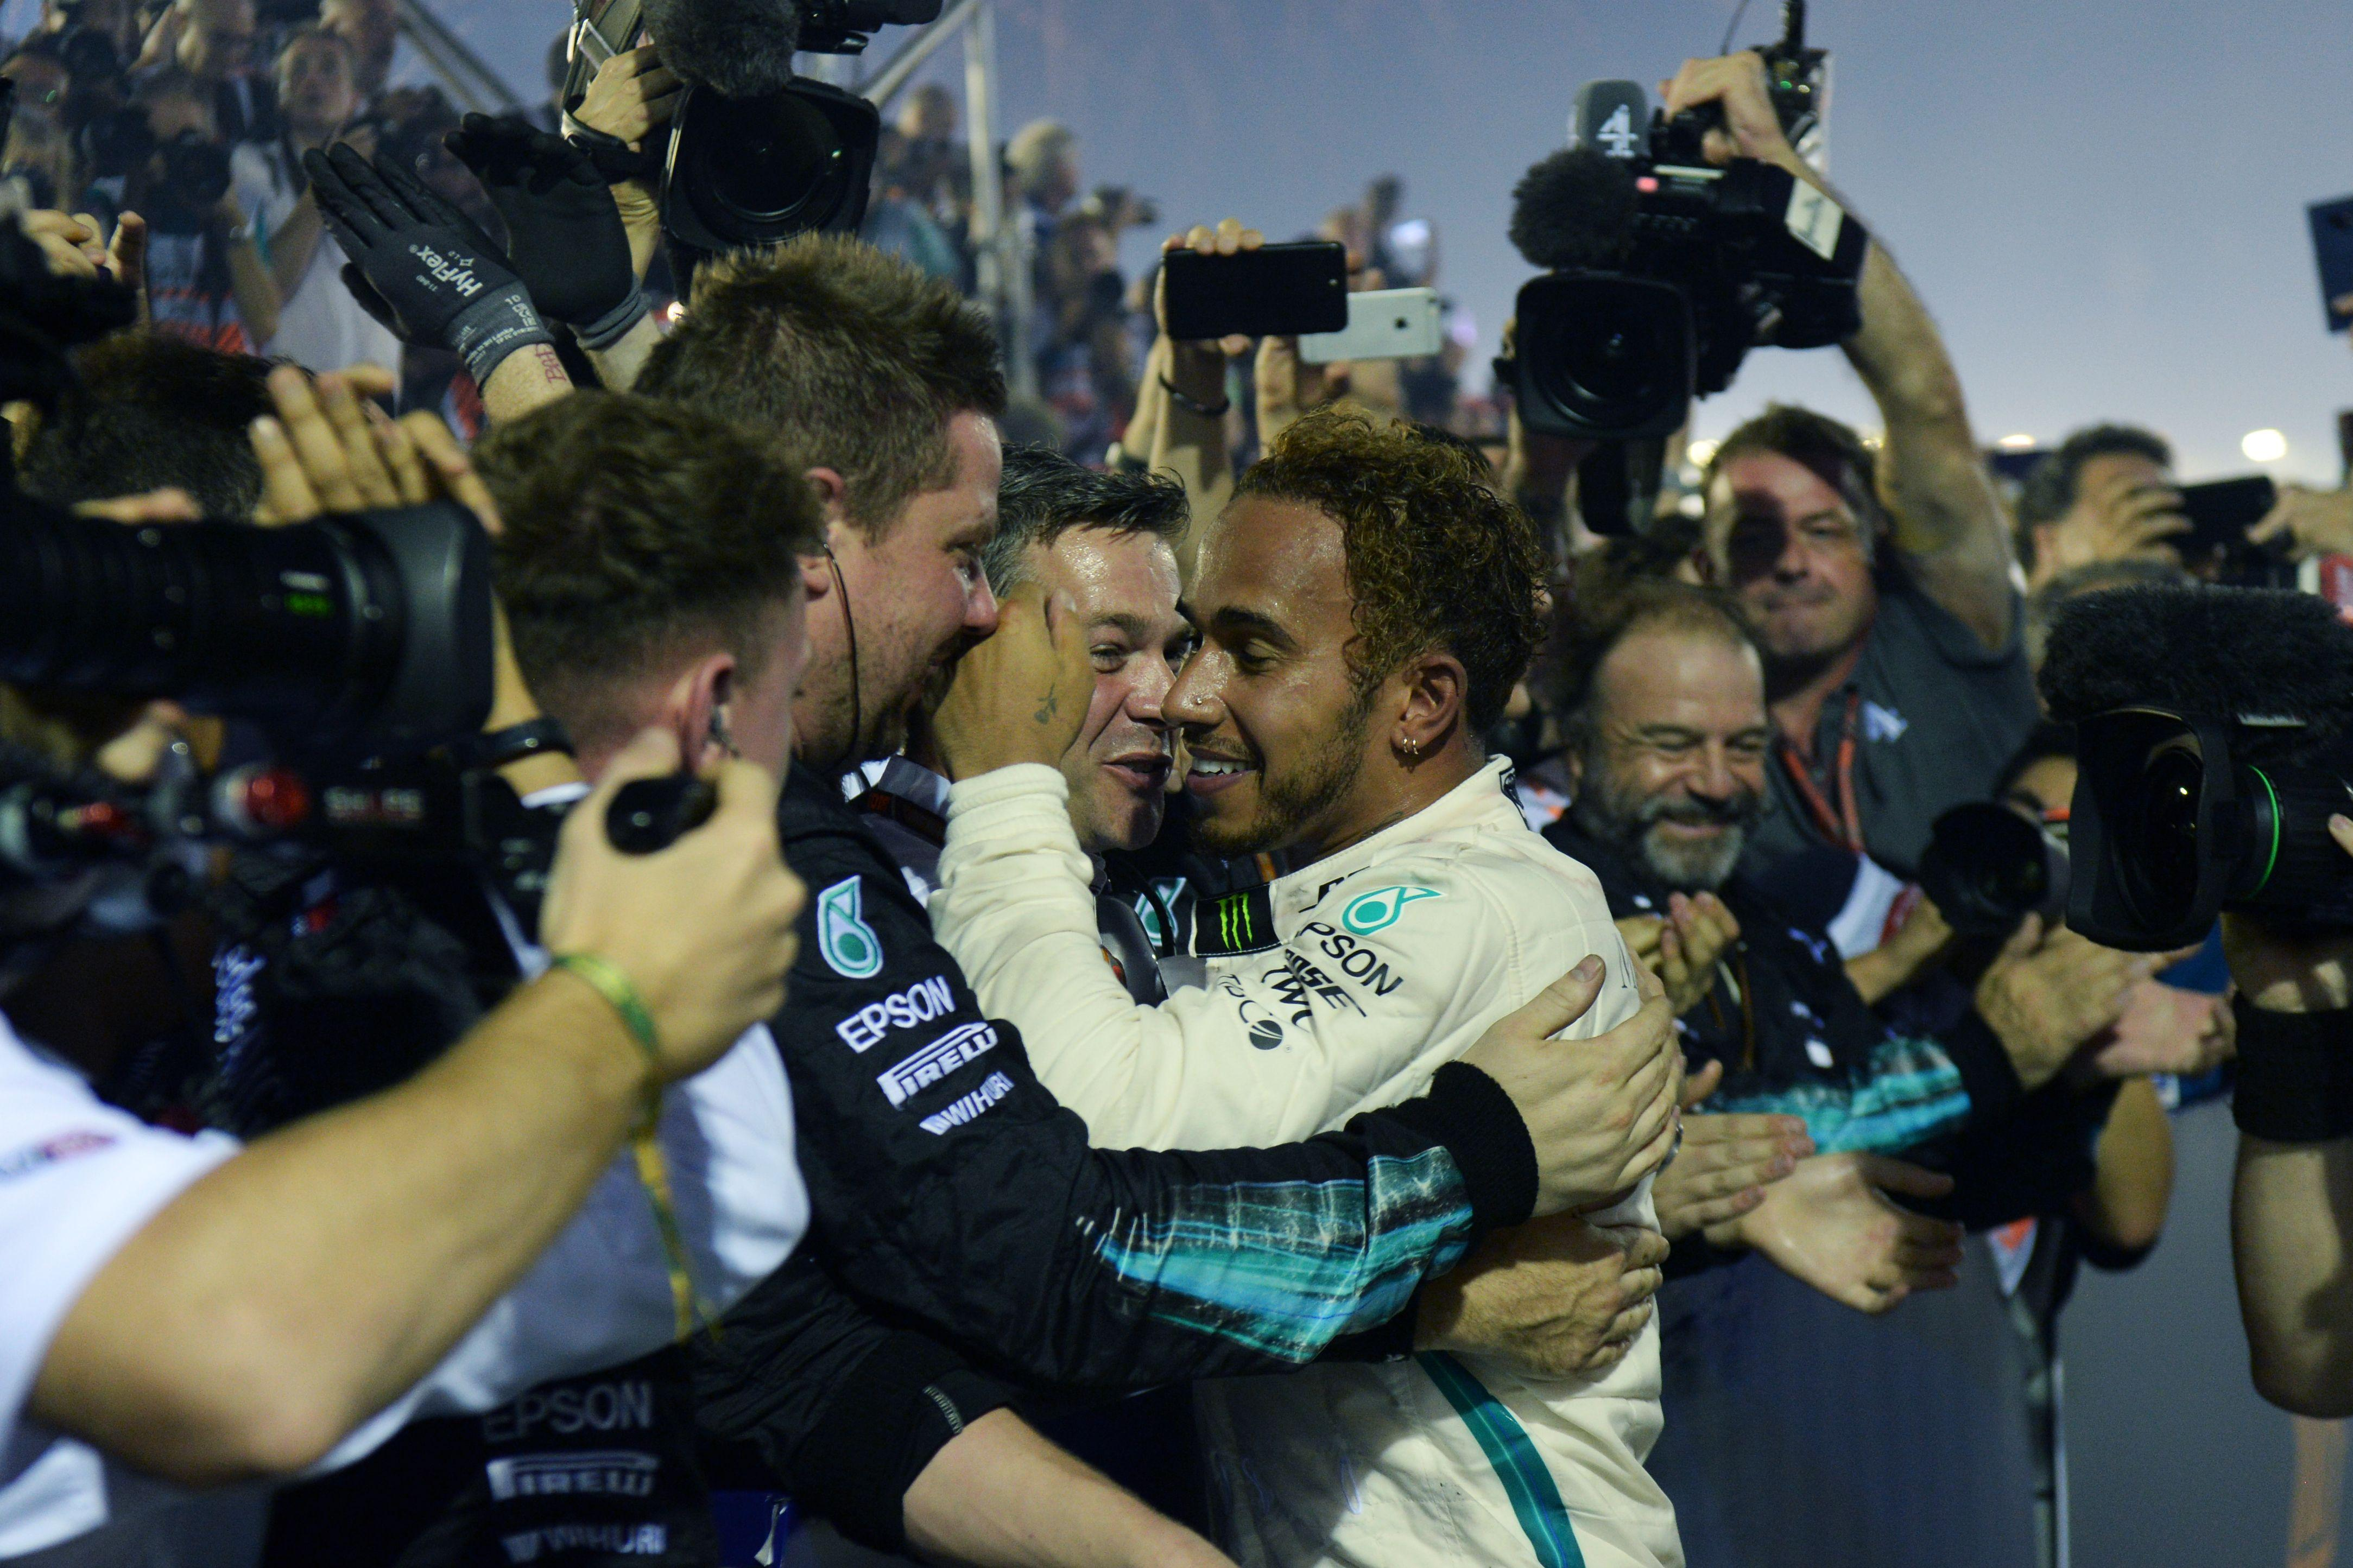 The Mercedes star greets his team at the end of the race he dominated